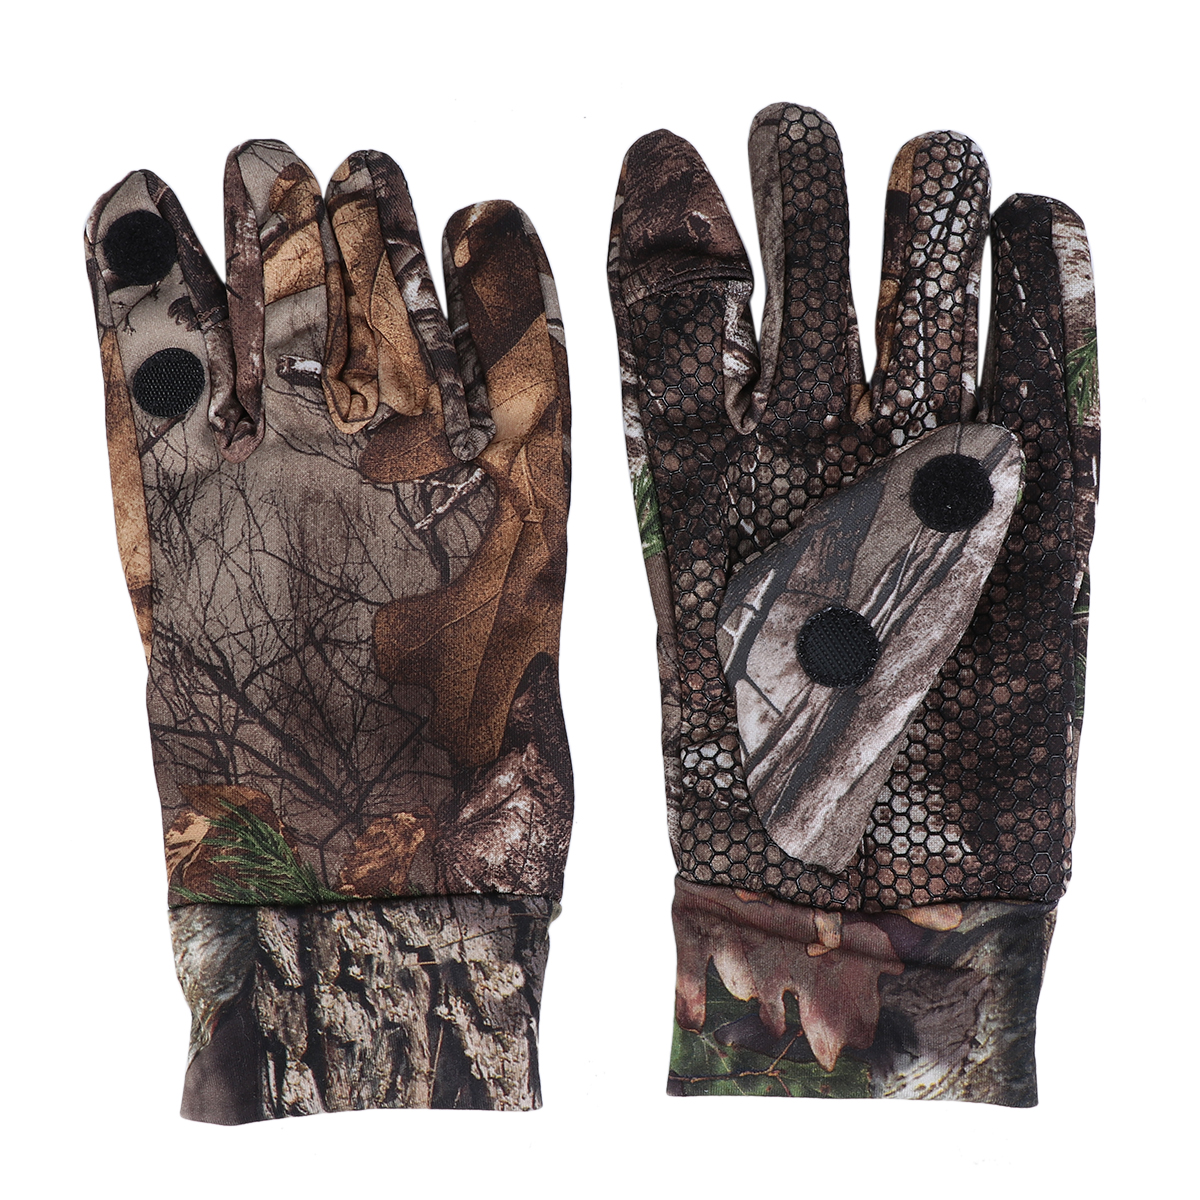 Outdoor Cycling Half-Finger Gloves Cut Finger Gloves With Anti-Slip Silicone Camouflage Fishing Gloves Fishing Accessories image